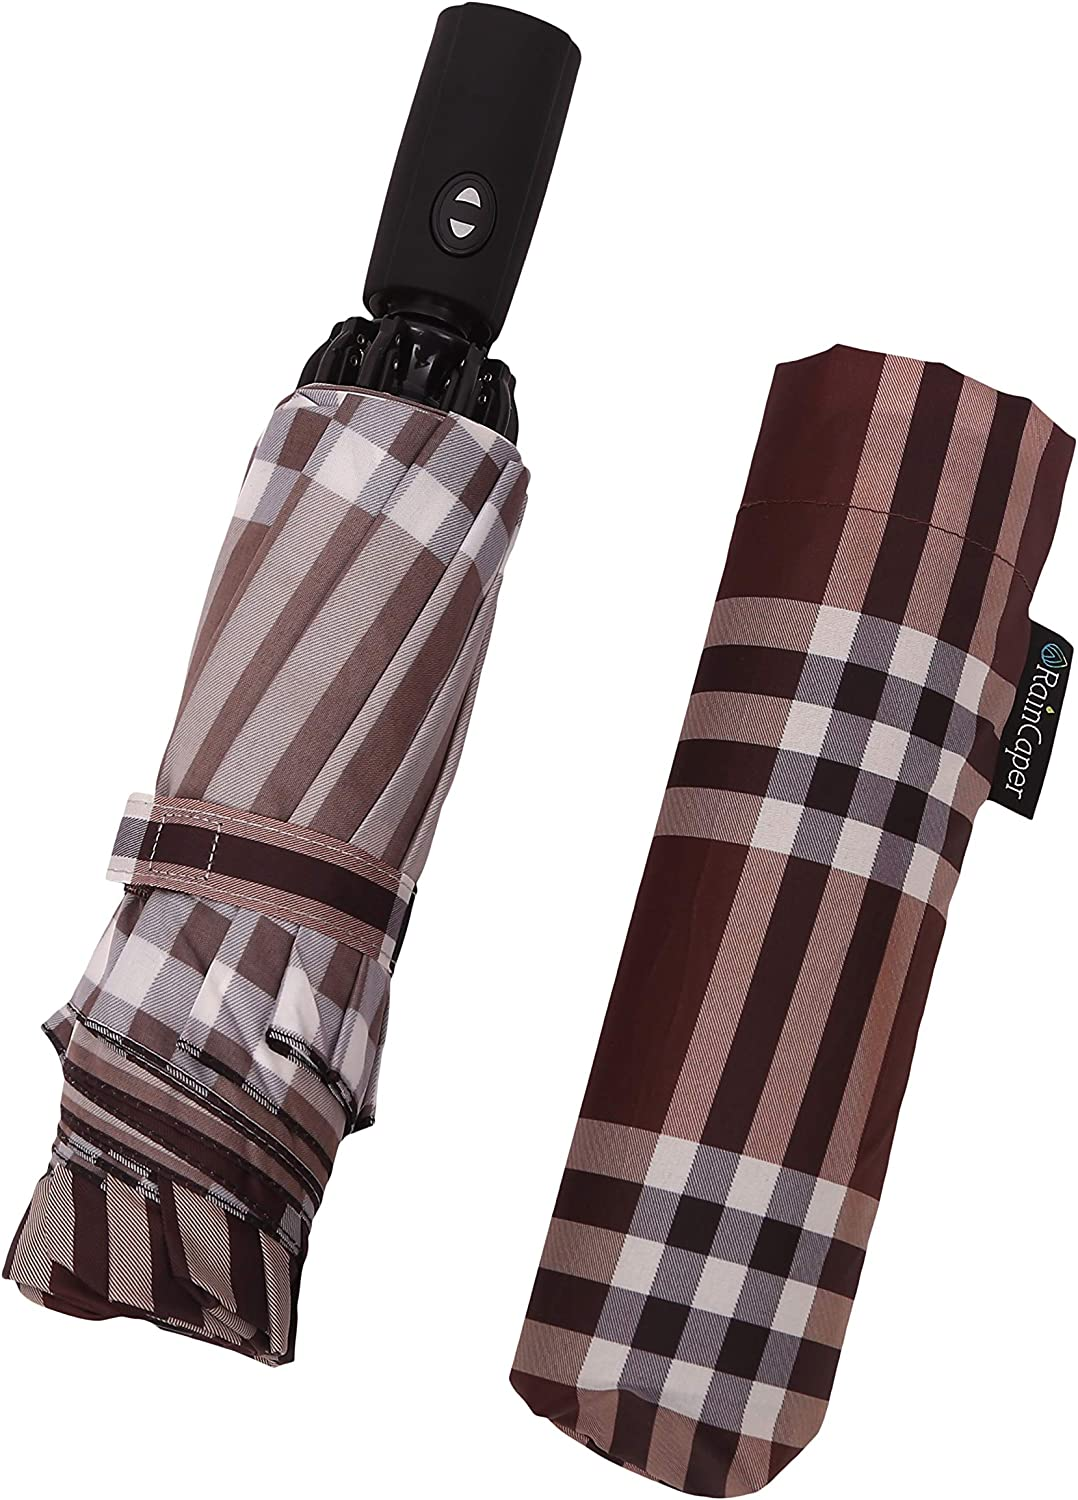 "RainCaper Windproof Auto Open//Close 46/"" Coverage Folding Travel Umbrella Crimson Black /& White Houndstooth Reinforced Rib Travel Umbrella w//Matching Sleeve"